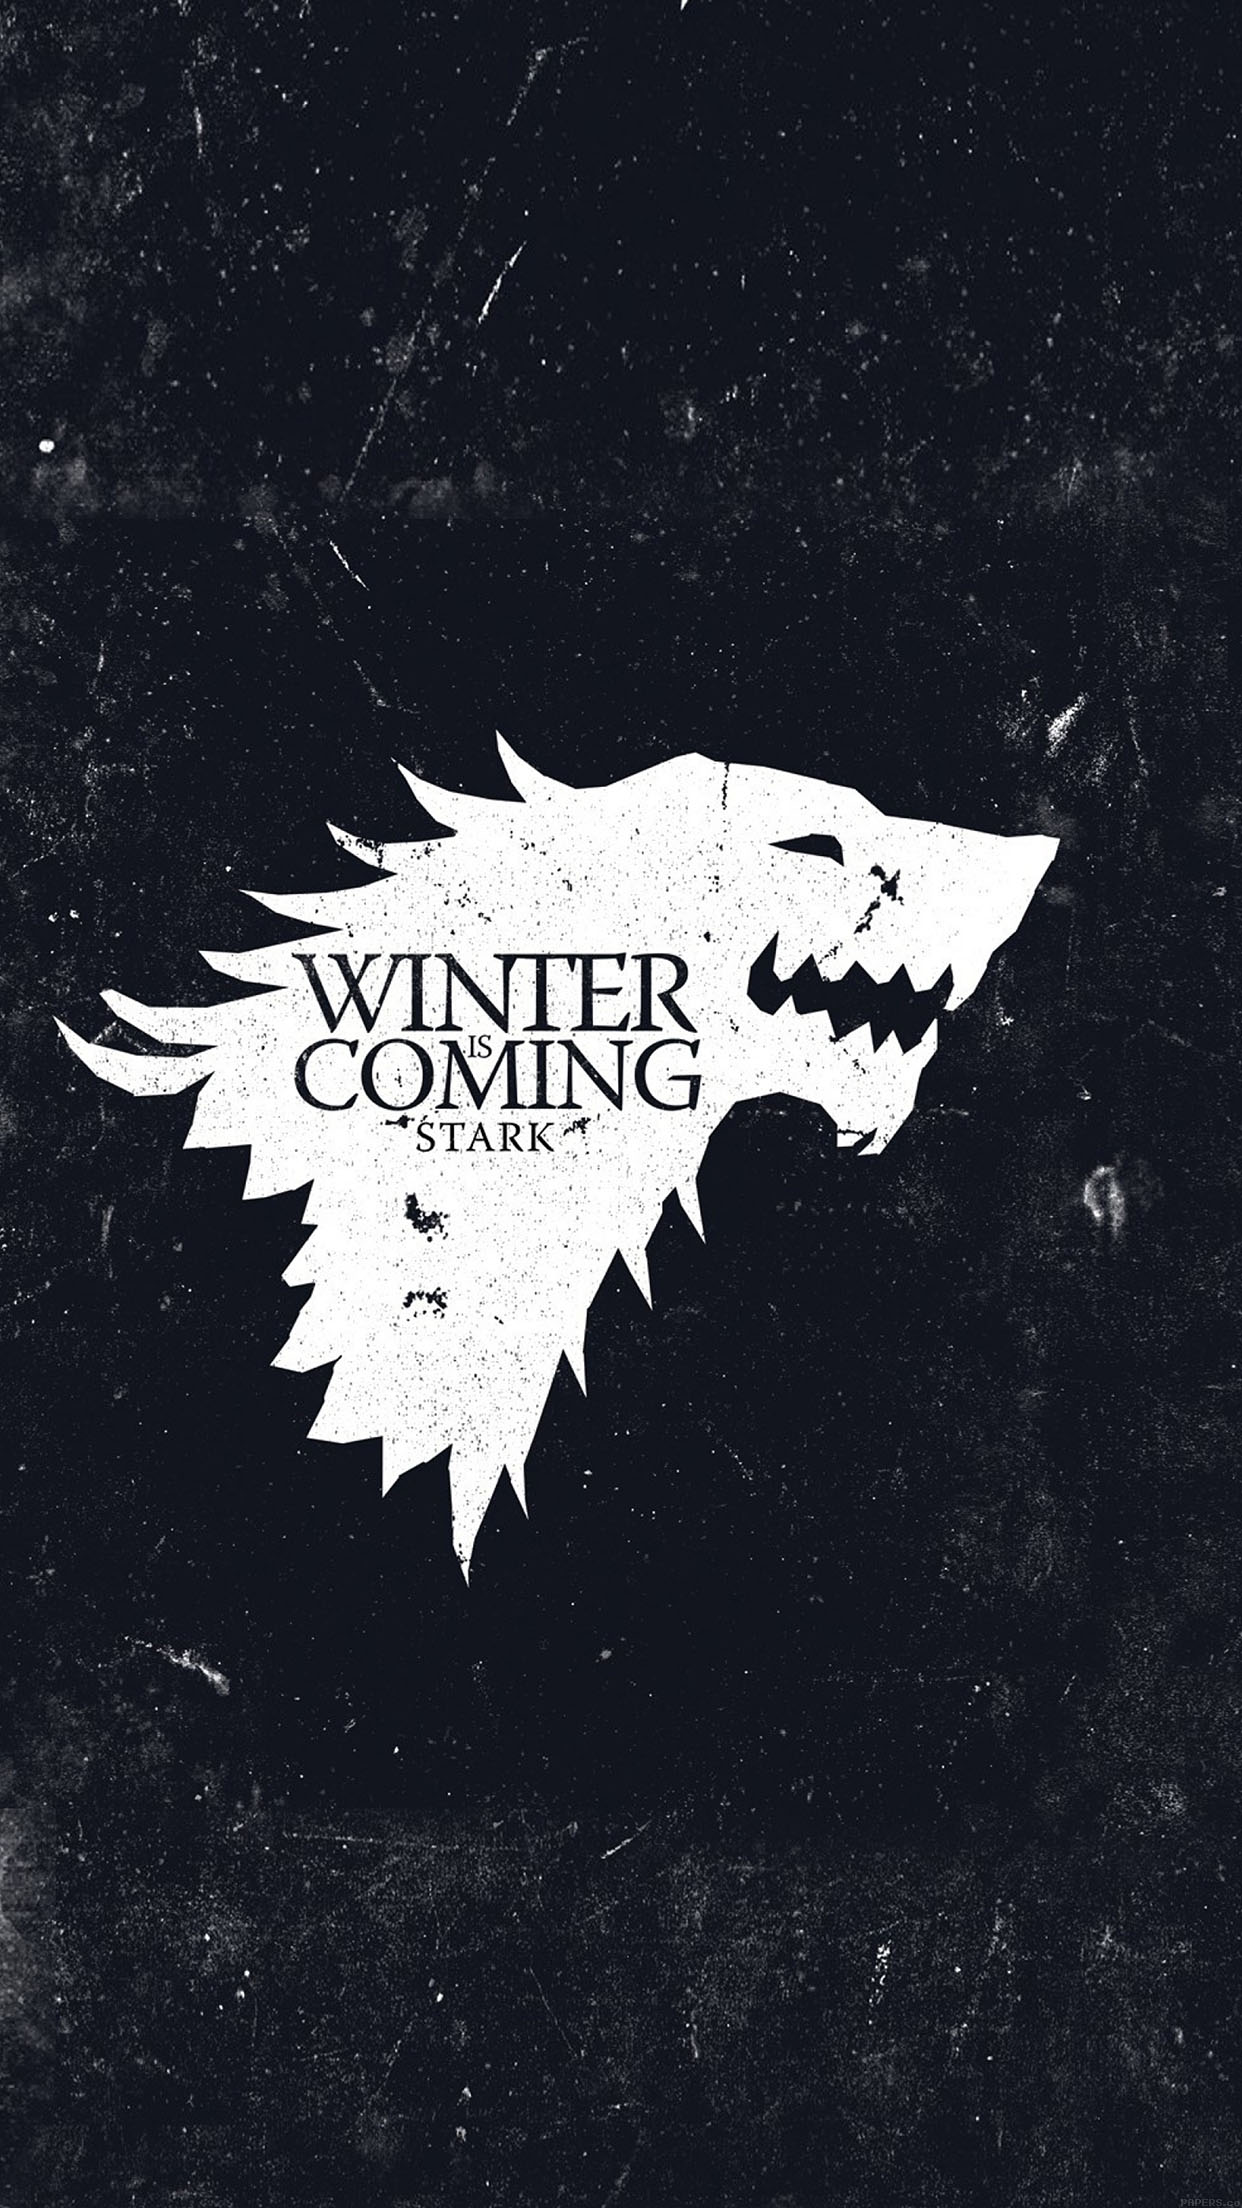 wallpaper game of thrones winter is coming 34 iphone6 plus wallpaper 1242x2208